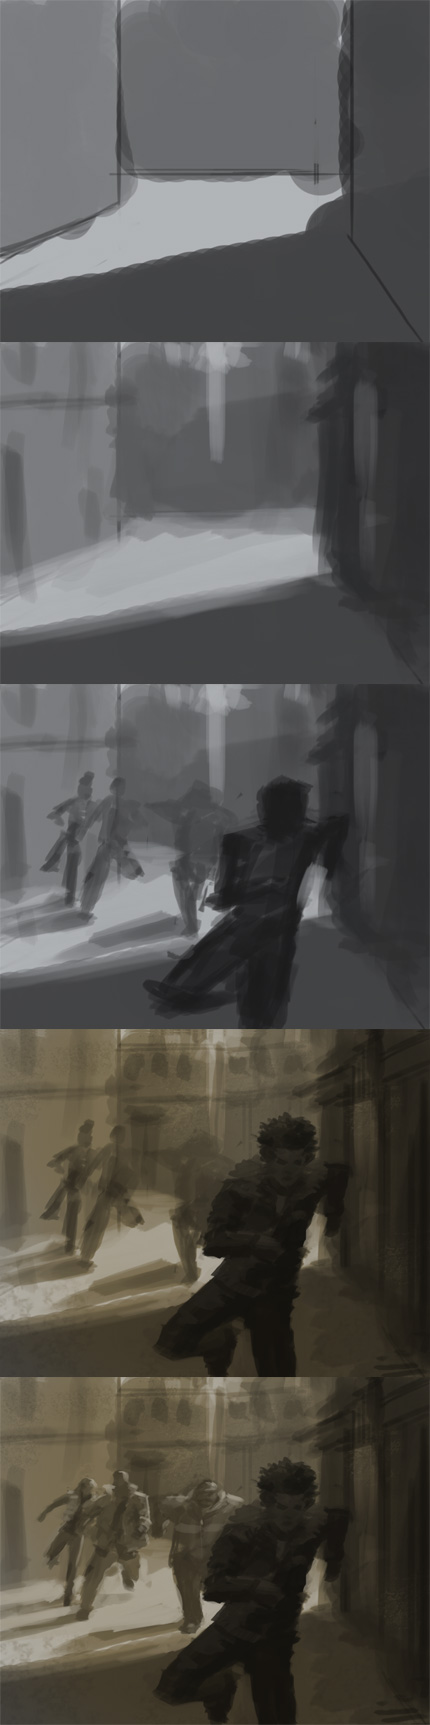 digital painting tutorial storyboard art Painting light and shadow in environmental design.